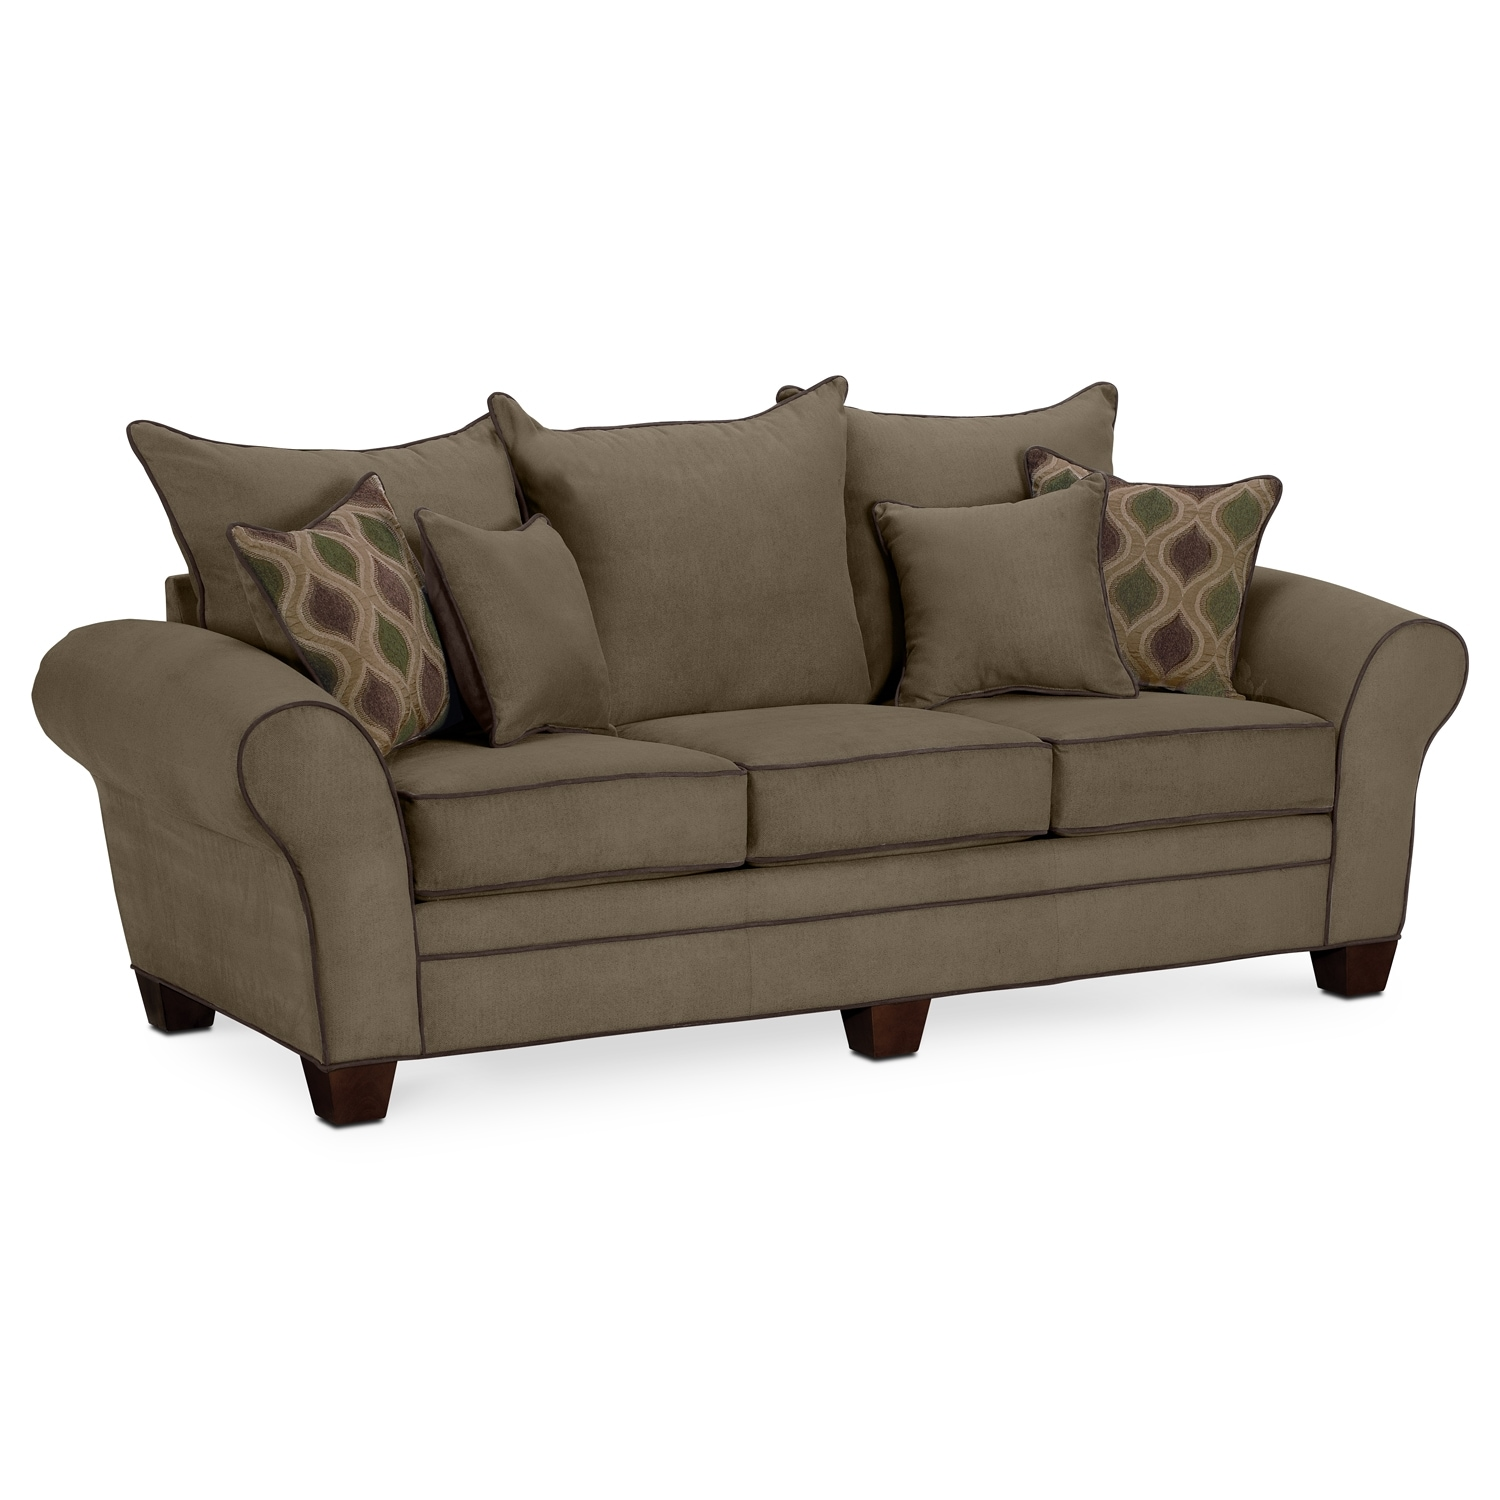 Rendezvous Sofa Olive Value City Furniture